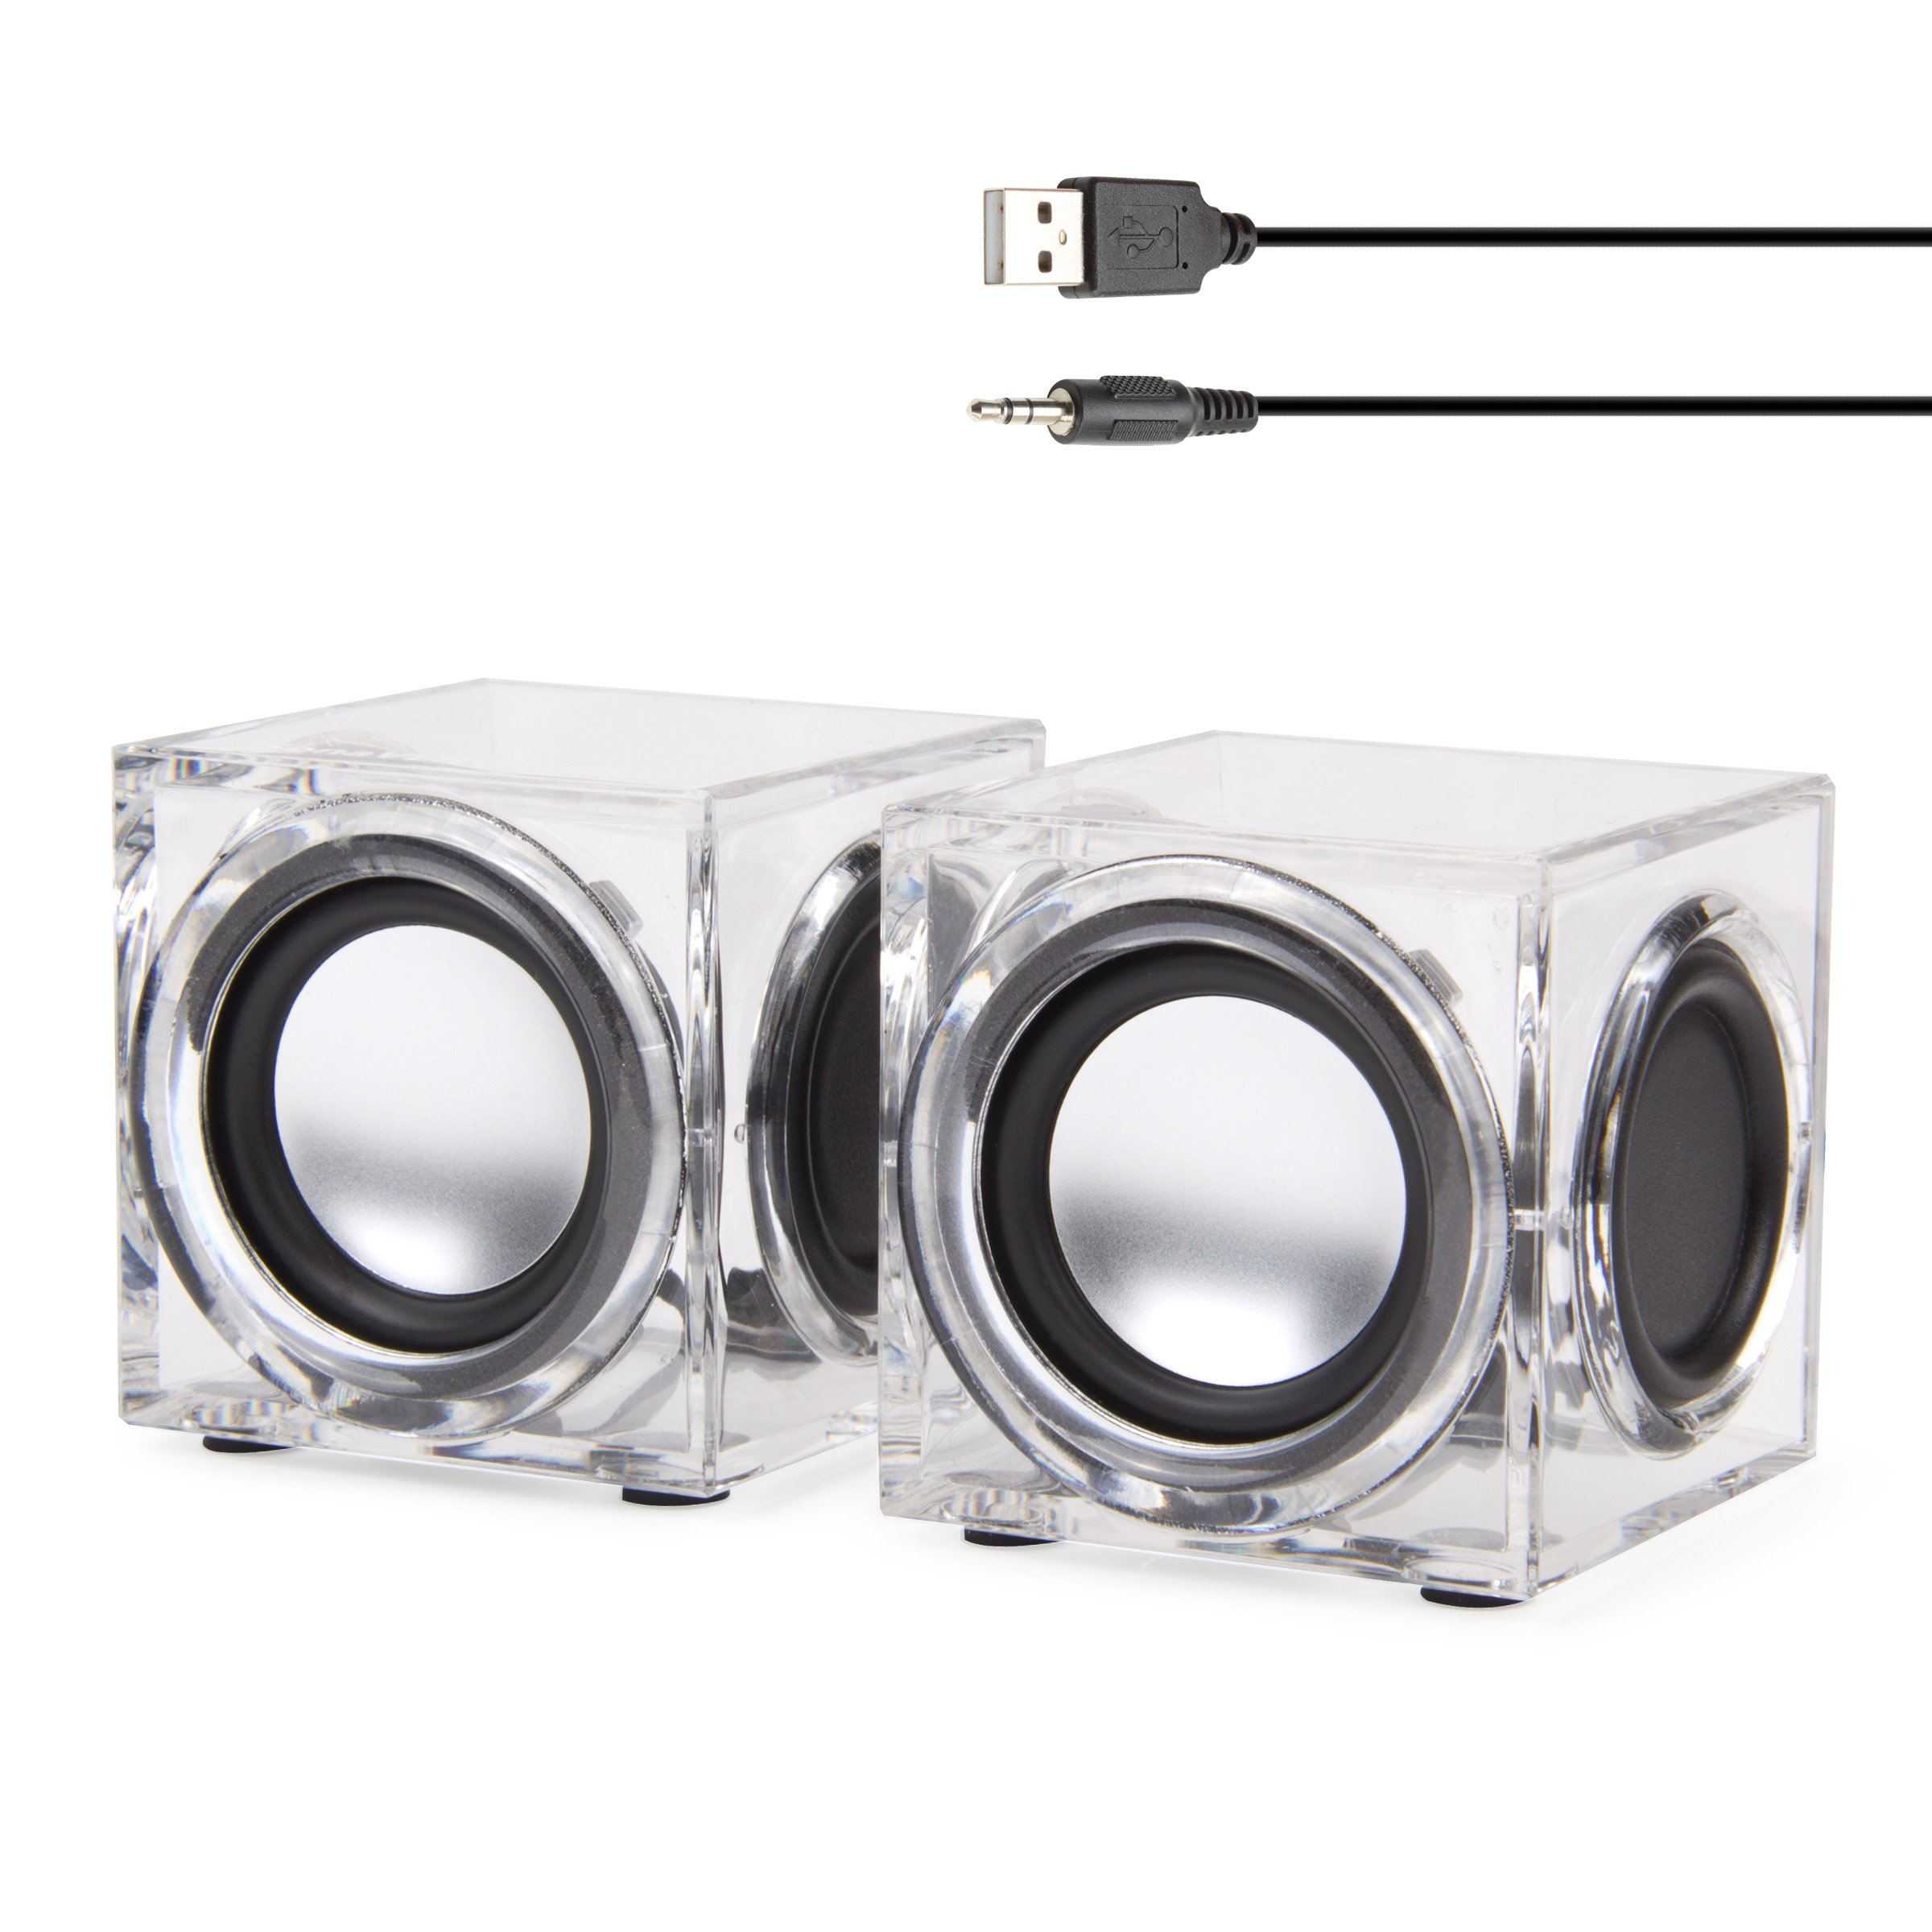 GOgroove Clear Cube USB Powered Wired PC Speakers SonaVERSE CRS 2.0 Stereo AUX 3.5mm Input w/Dual Passive Woofers, 6W Output - Mini Ice Block Acrylic Design for Laptops, Office, Industrial Décor